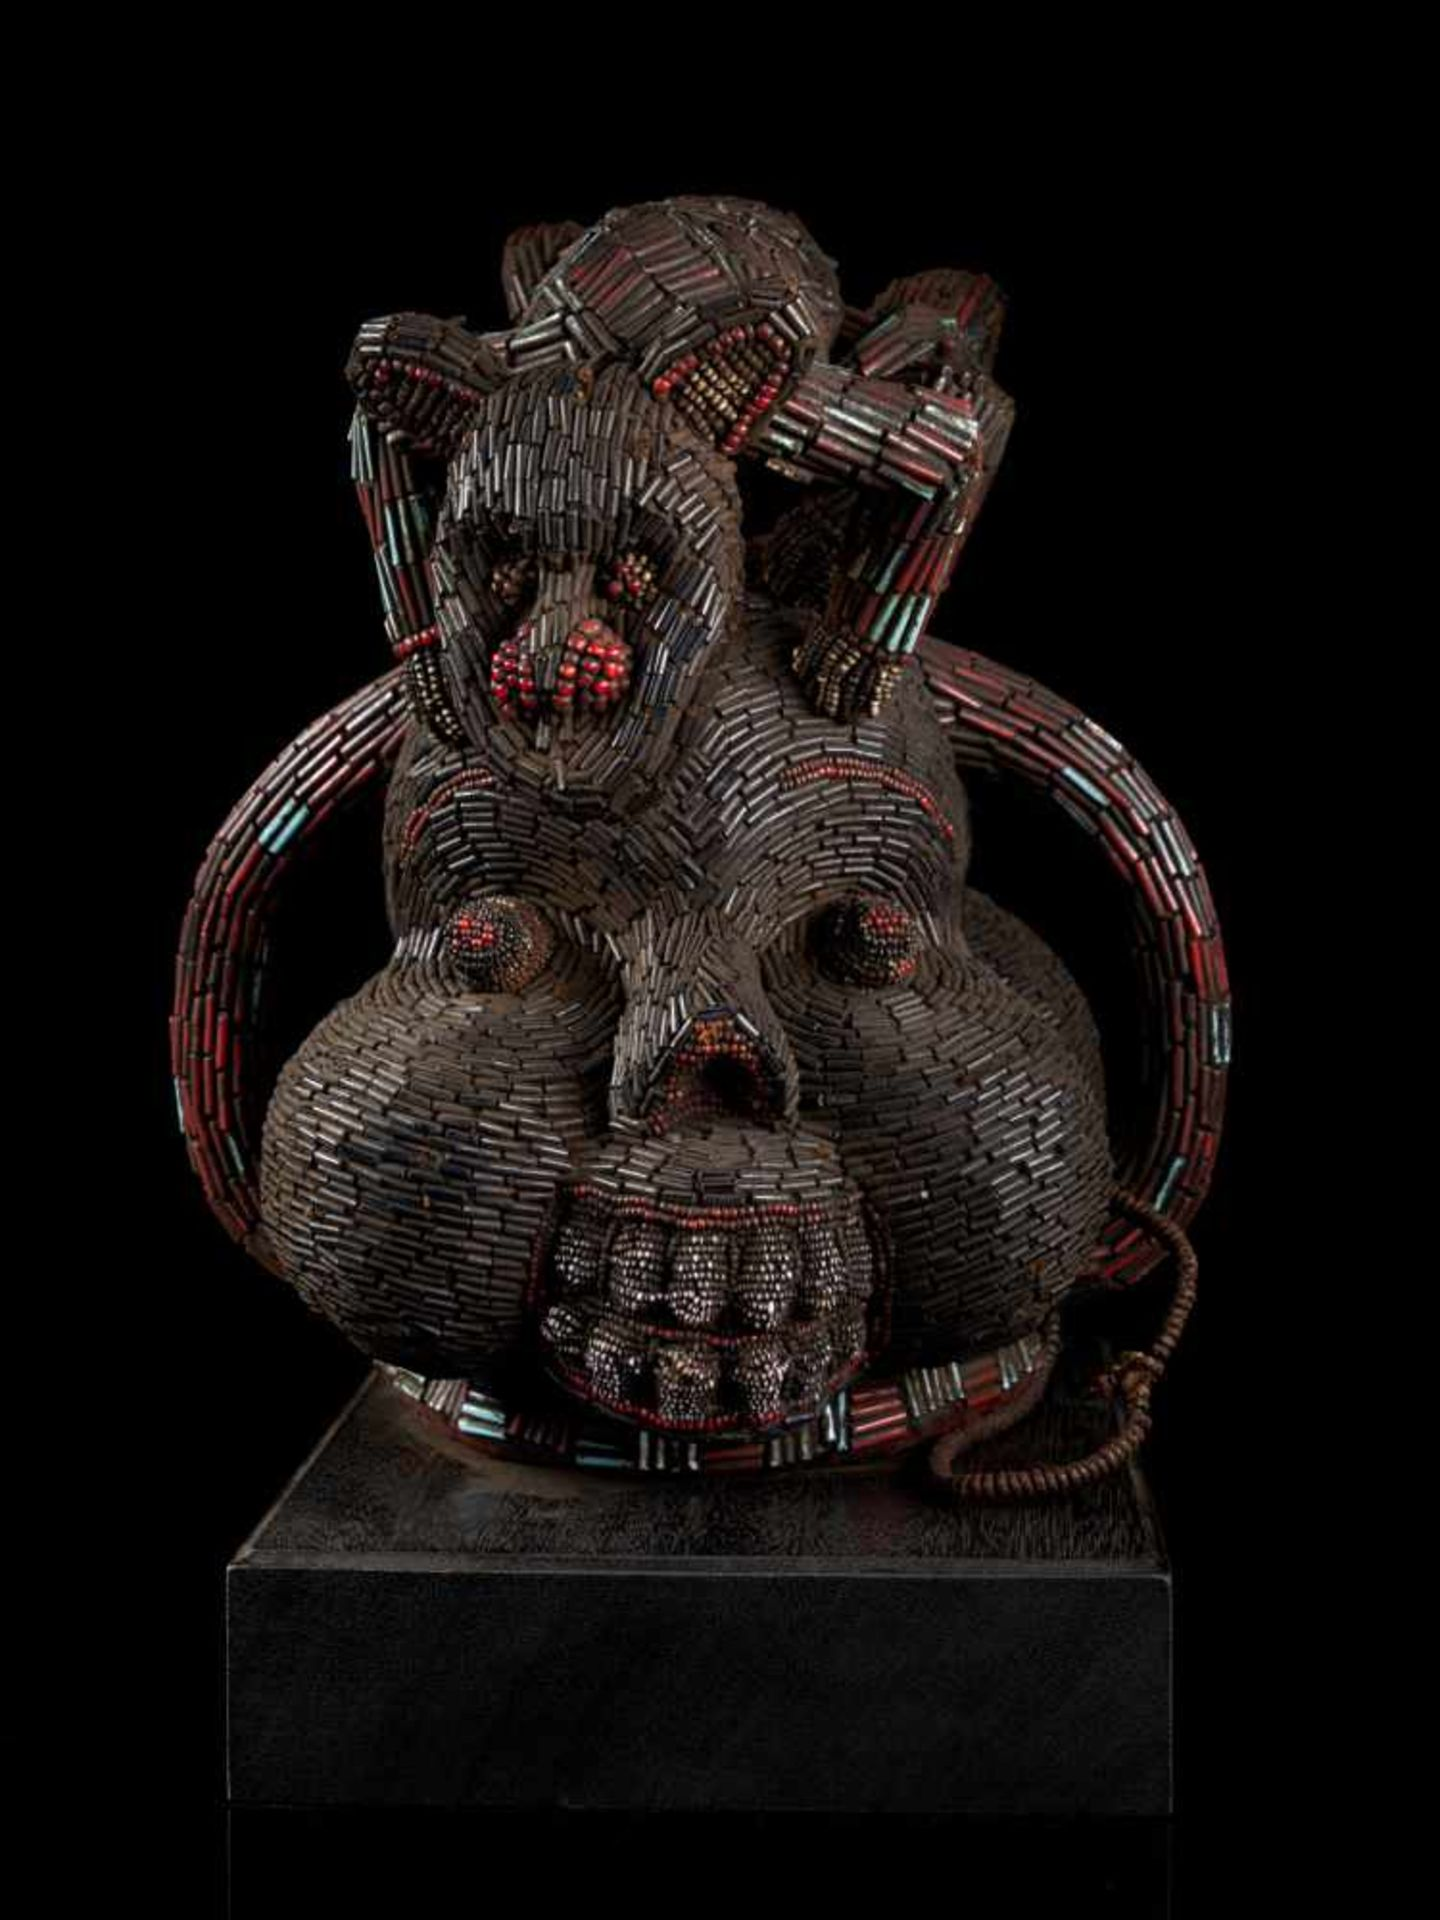 Beaded Double Head With Elephant And Leopard Mount - Tribal ArtThis striking double head sculpture - Bild 6 aus 7